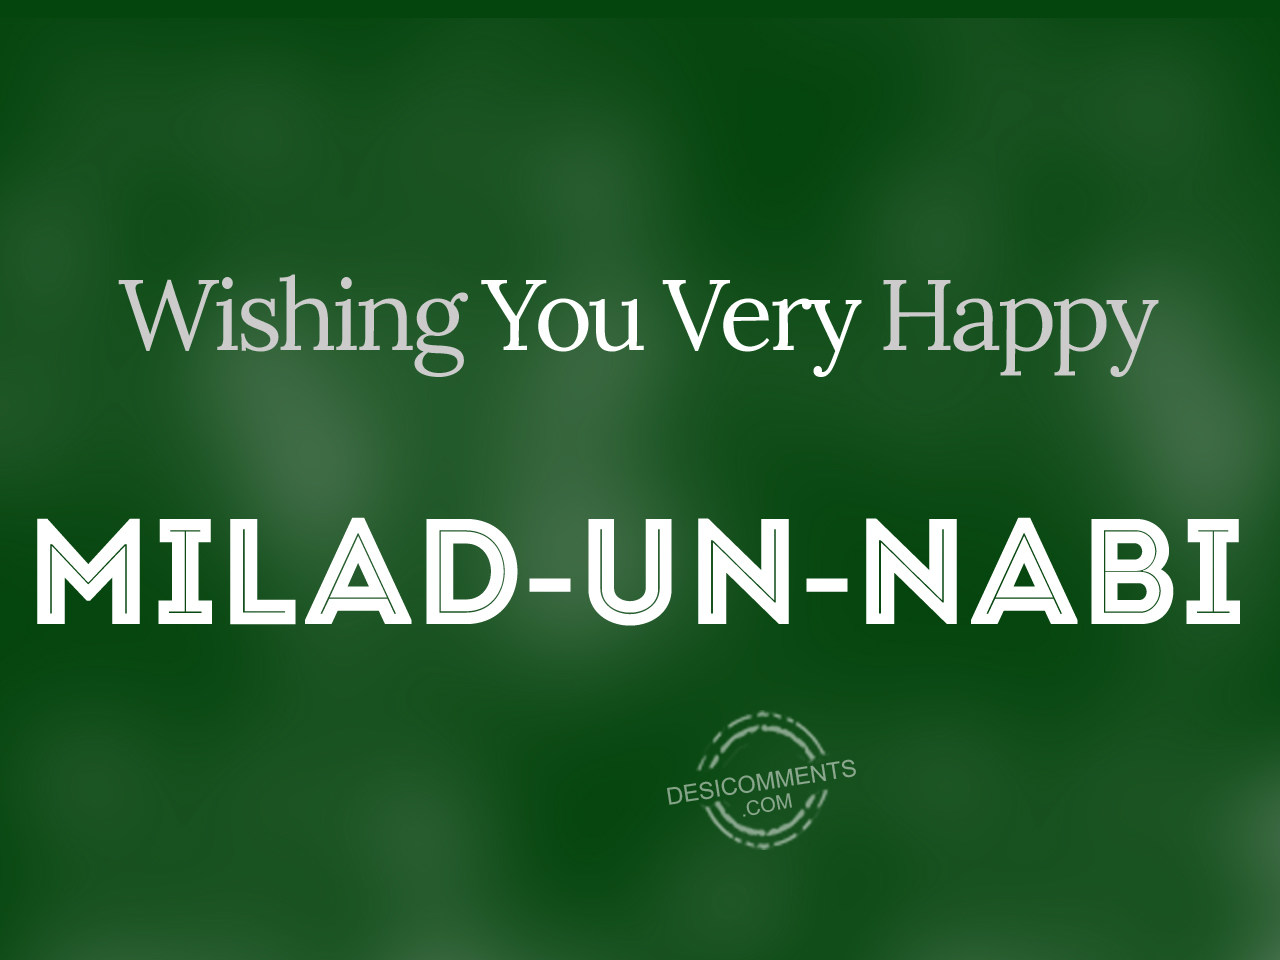 Milad un nabi pictures images graphics page 2 wishing you very happy milad un nabi kristyandbryce Choice Image